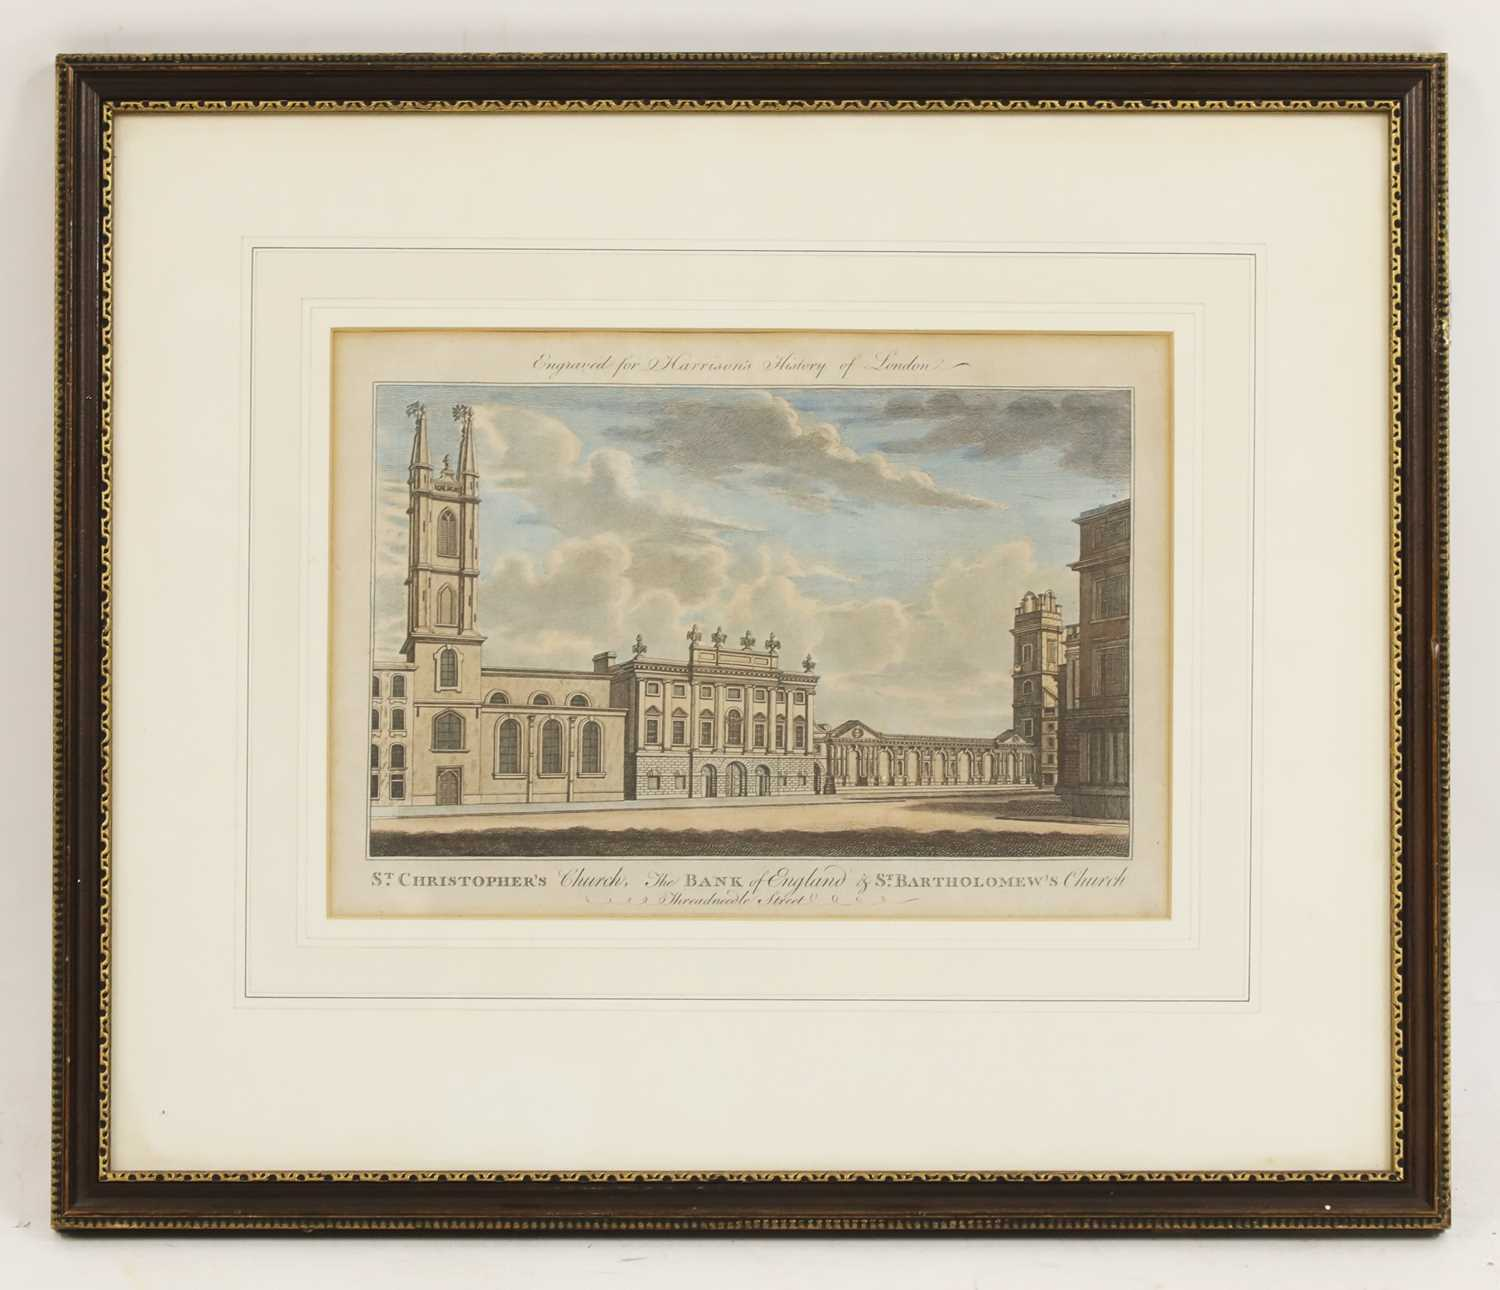 ST CHRISTOPHER'S CHURCH, THE BANK OF ENGLAND AND ST BARTHOLOMEW'S CHURCH - Image 4 of 4